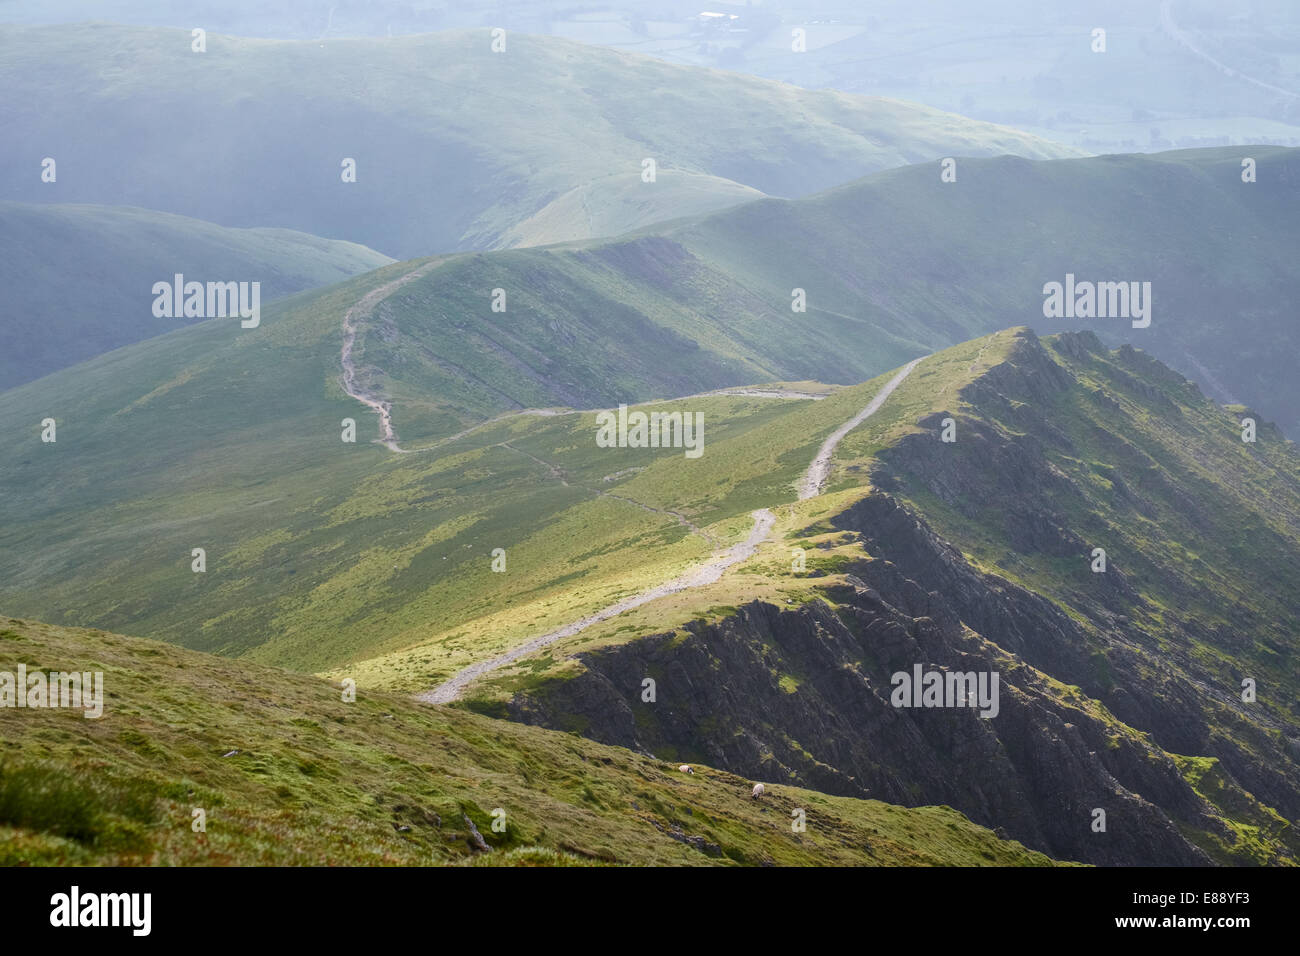 Looking down Scales Fell from the summit of Blencathra in the Lake District, Cumbria, England.UK. - Stock Image